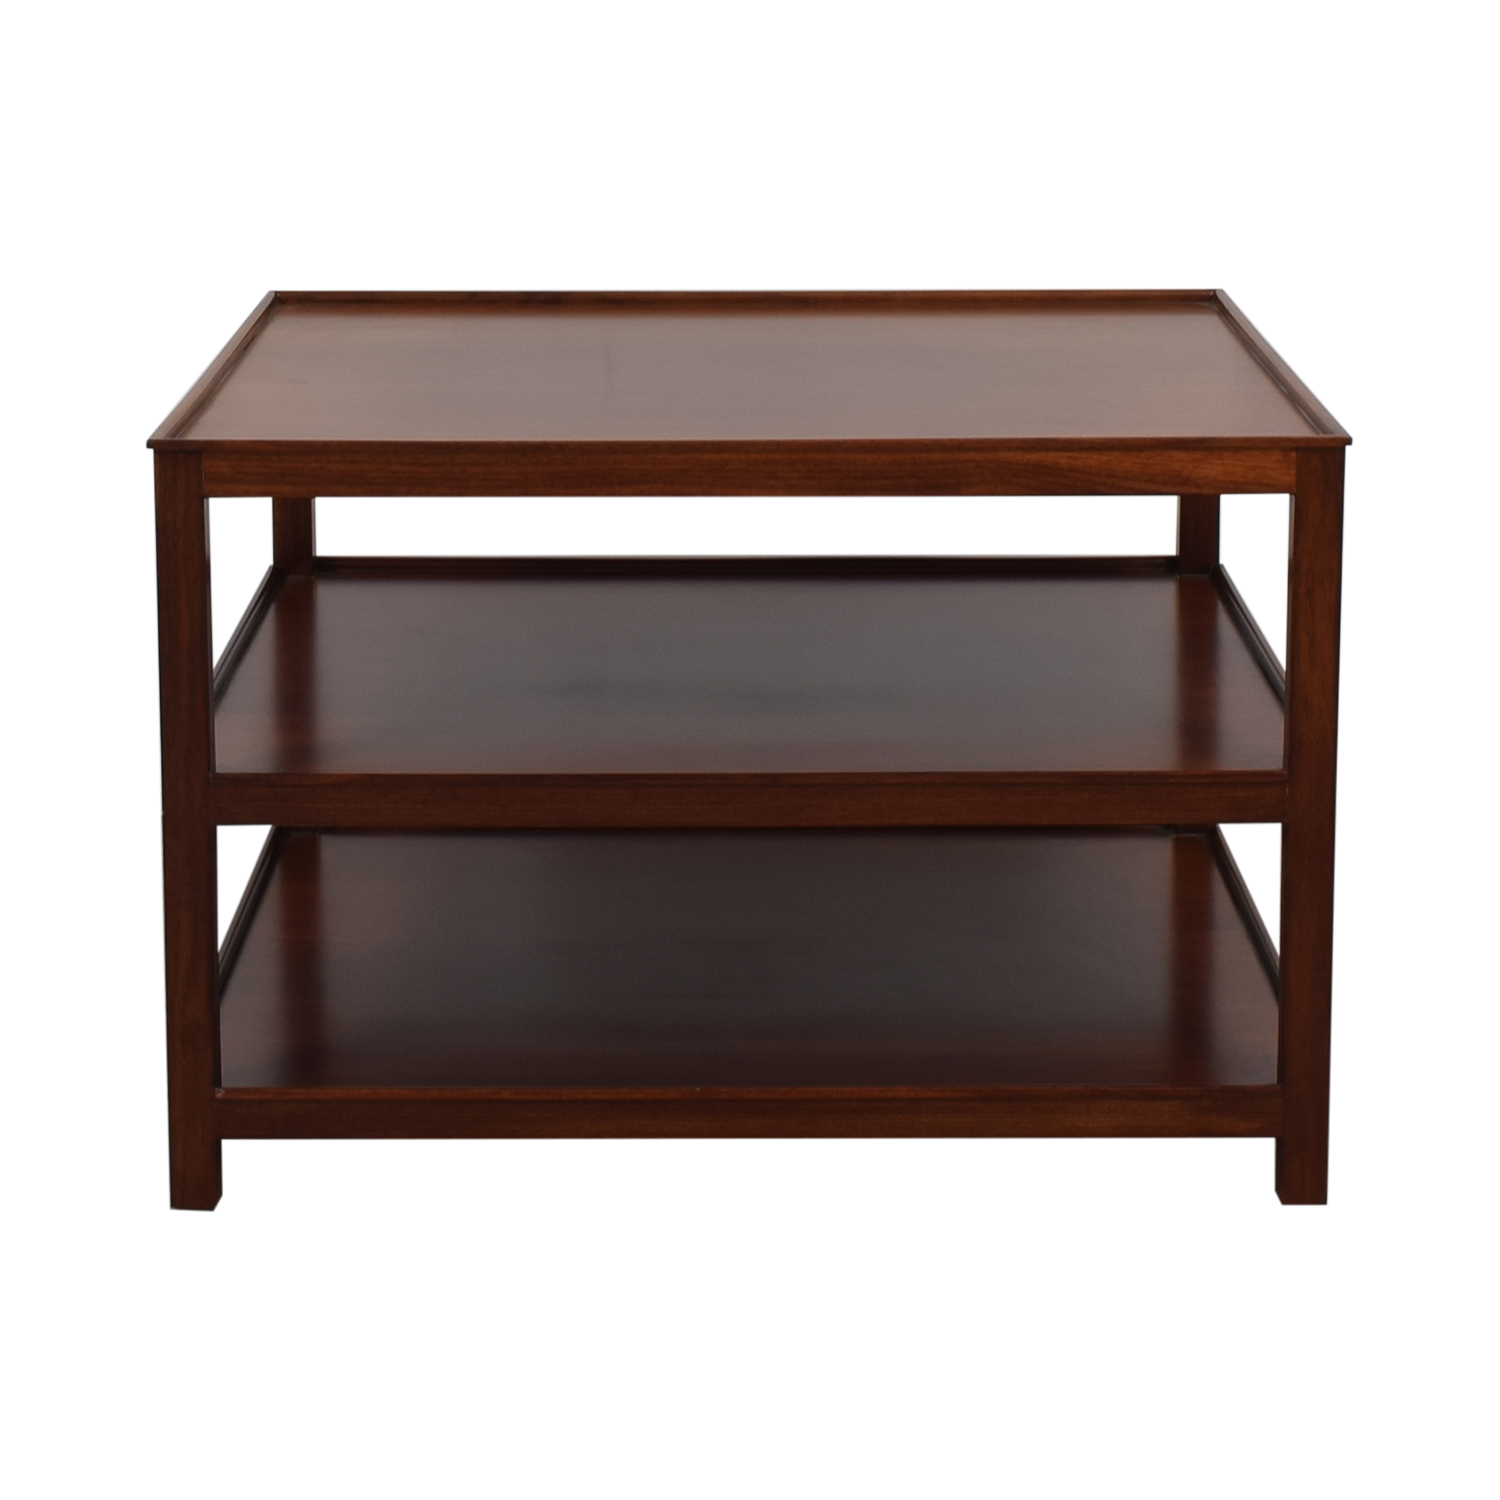 buy Furniture Masters Storage Coffee Table Furniture Masters